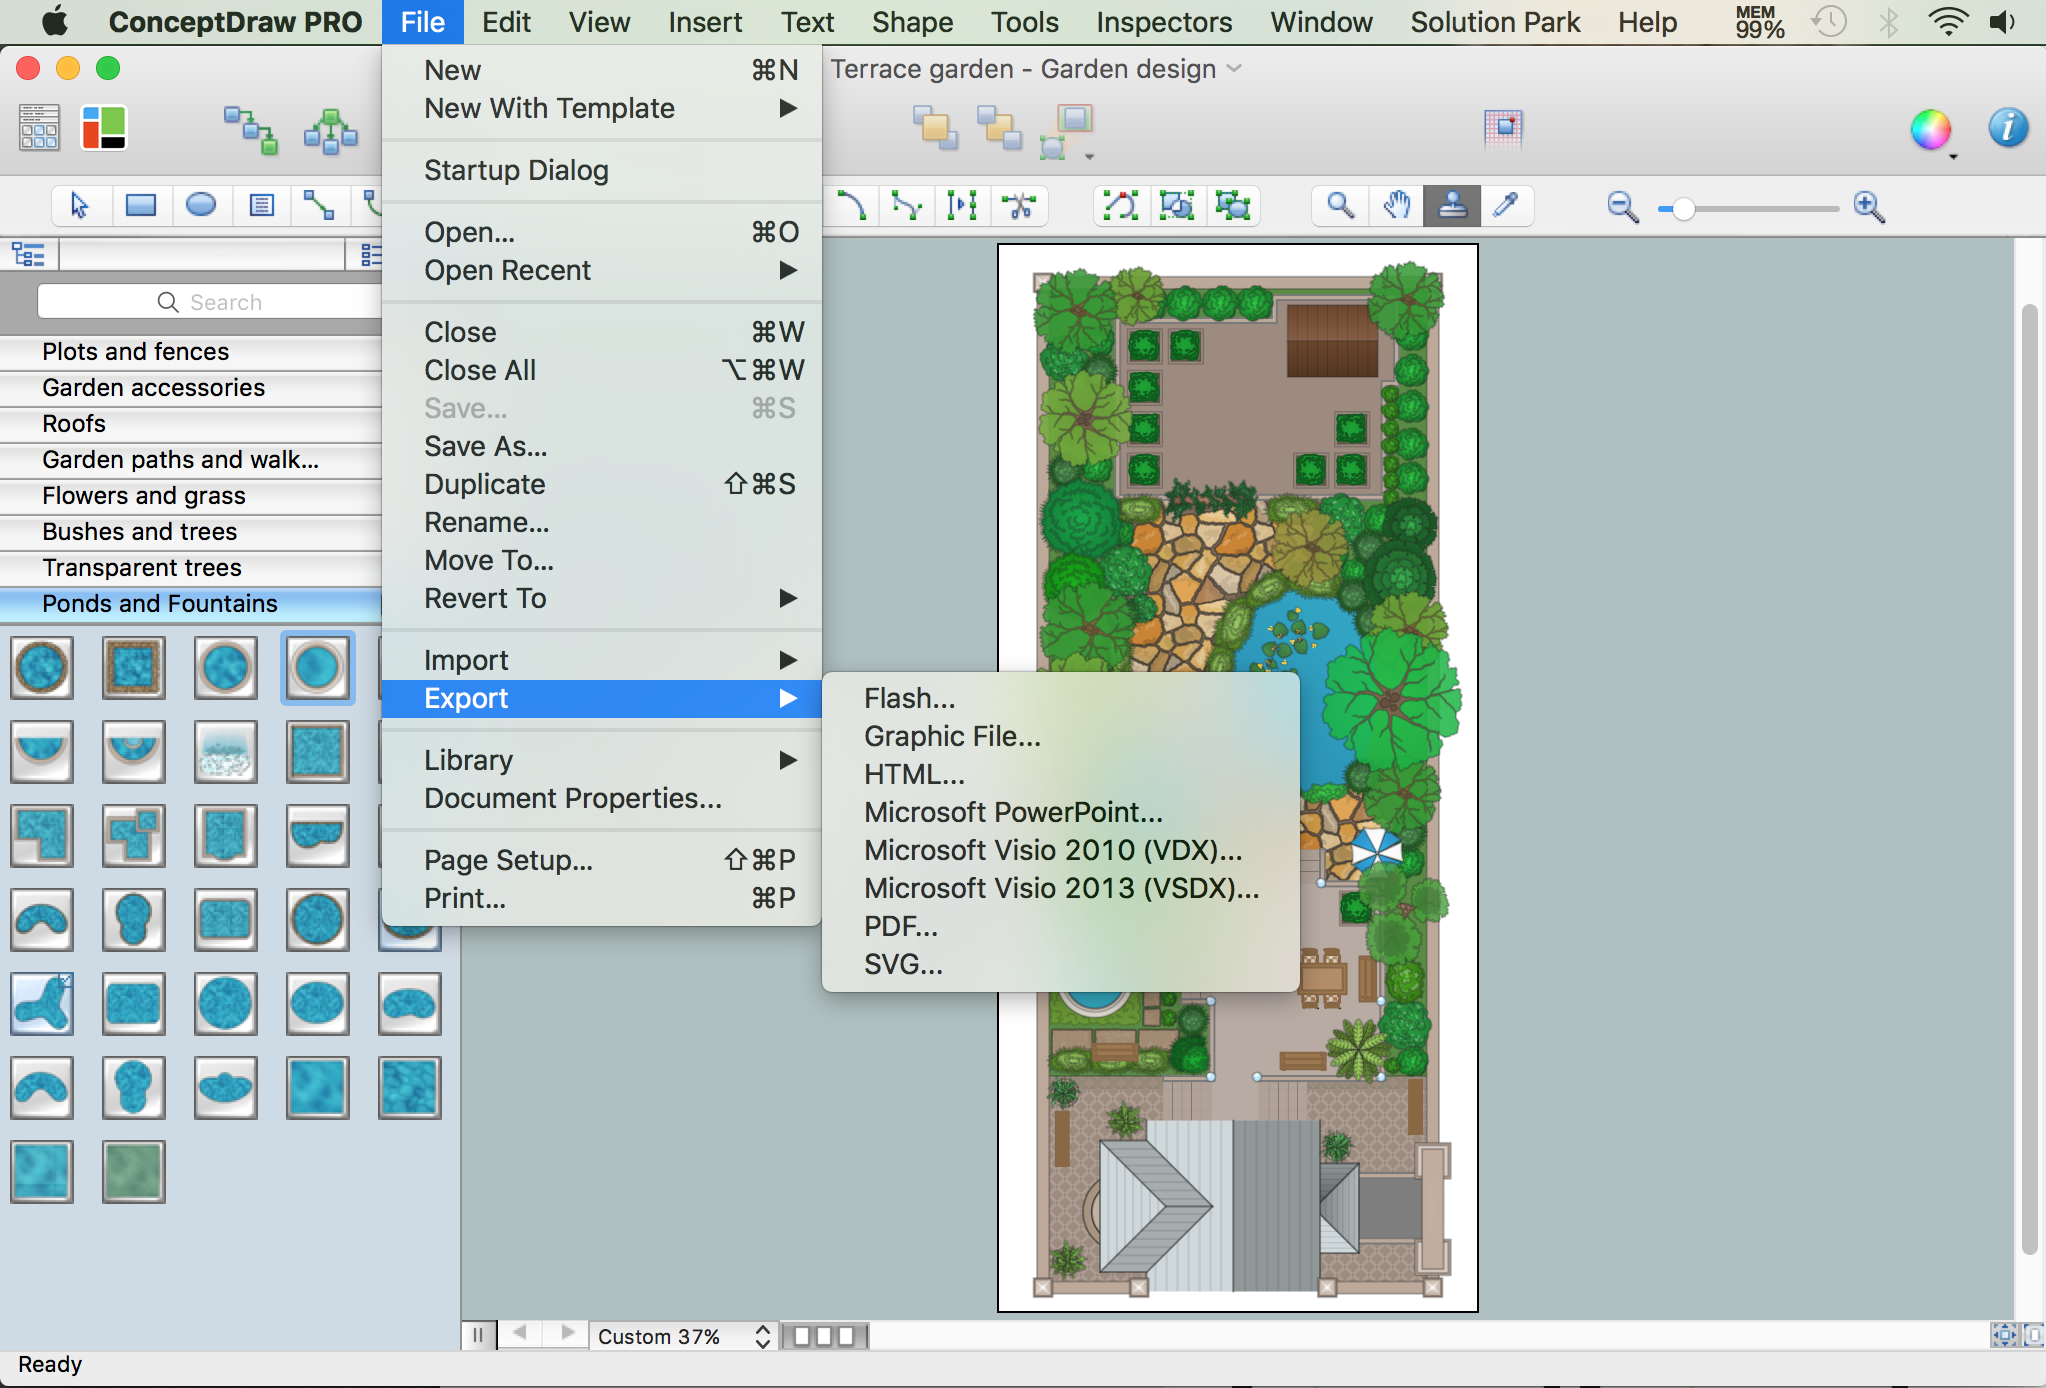 tasty home design tools. Exporting Landscape Design Plan Software  Draw Deck and Patio Plans